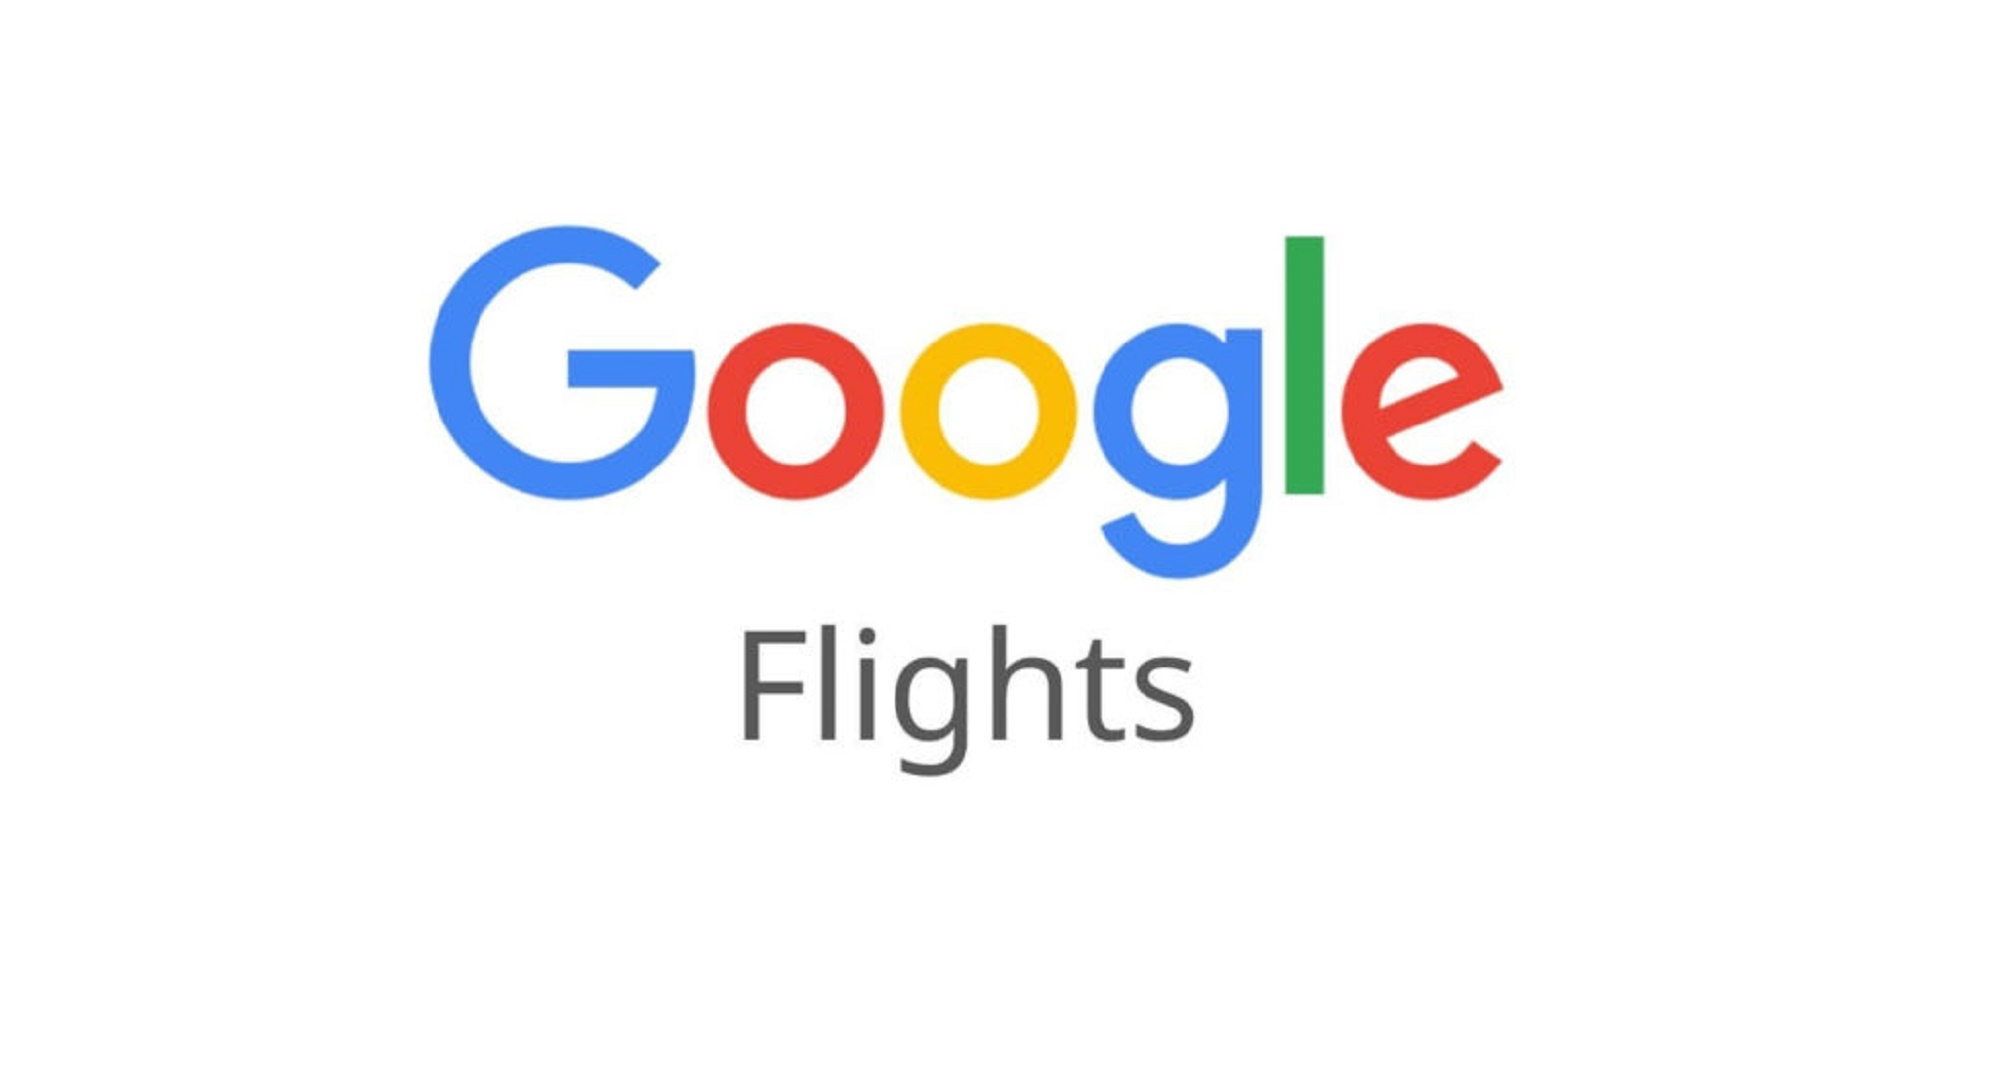 Google Flights Google Flights Will Be Able To Alert You To Your Delay Before The